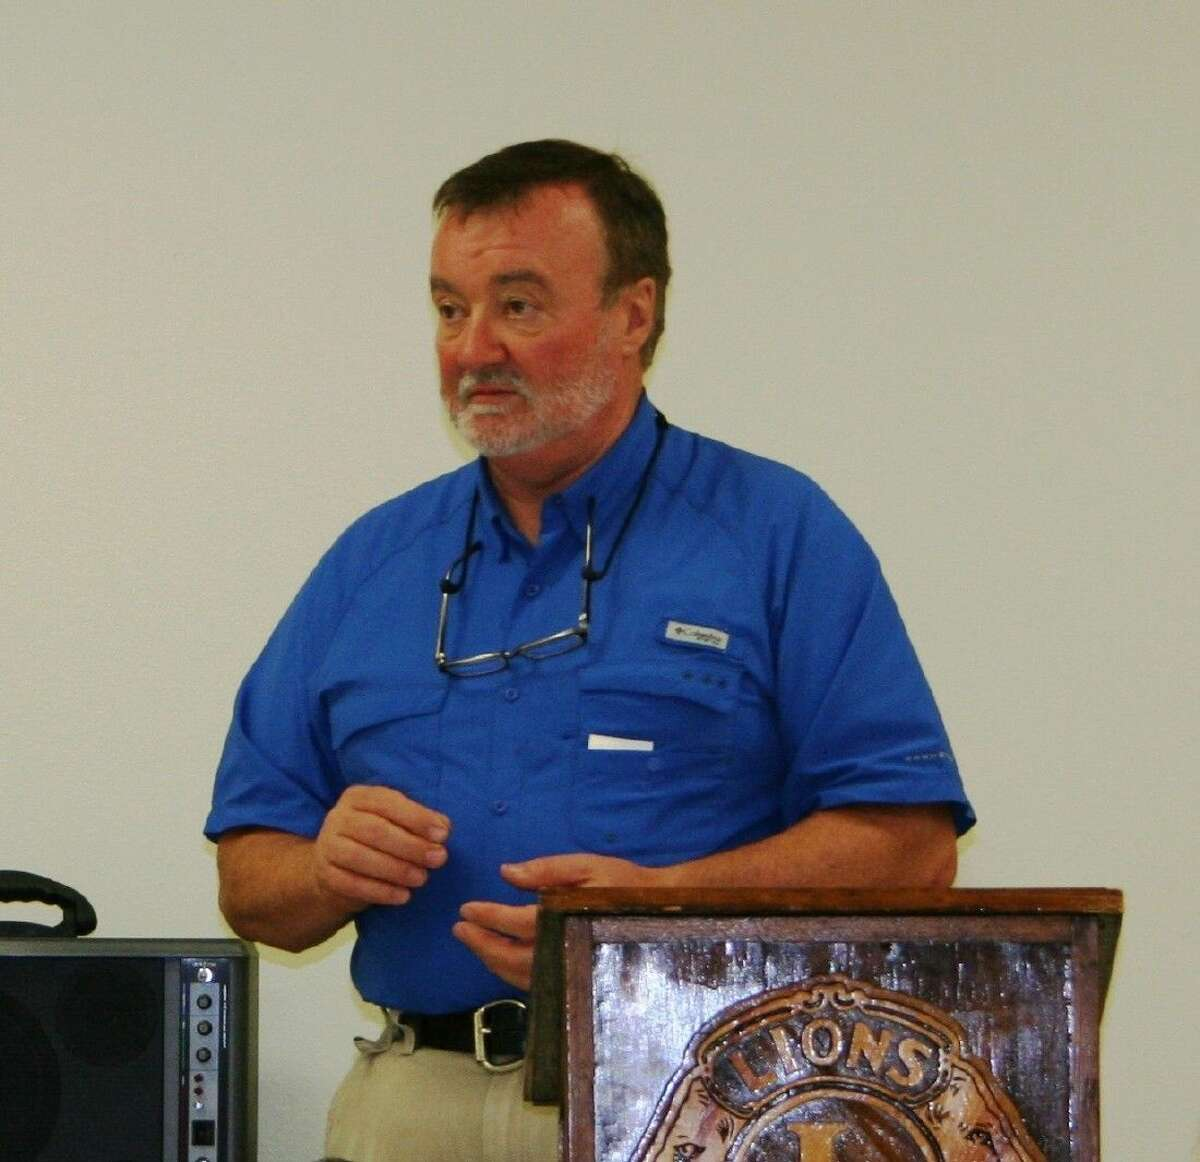 New City of Cleveland Director of Public Works Rod Hainey addressed the members of the Cleveland Lions Club on Tuesday, July 22, where he spoke on the current state of the city, as well as future developments.